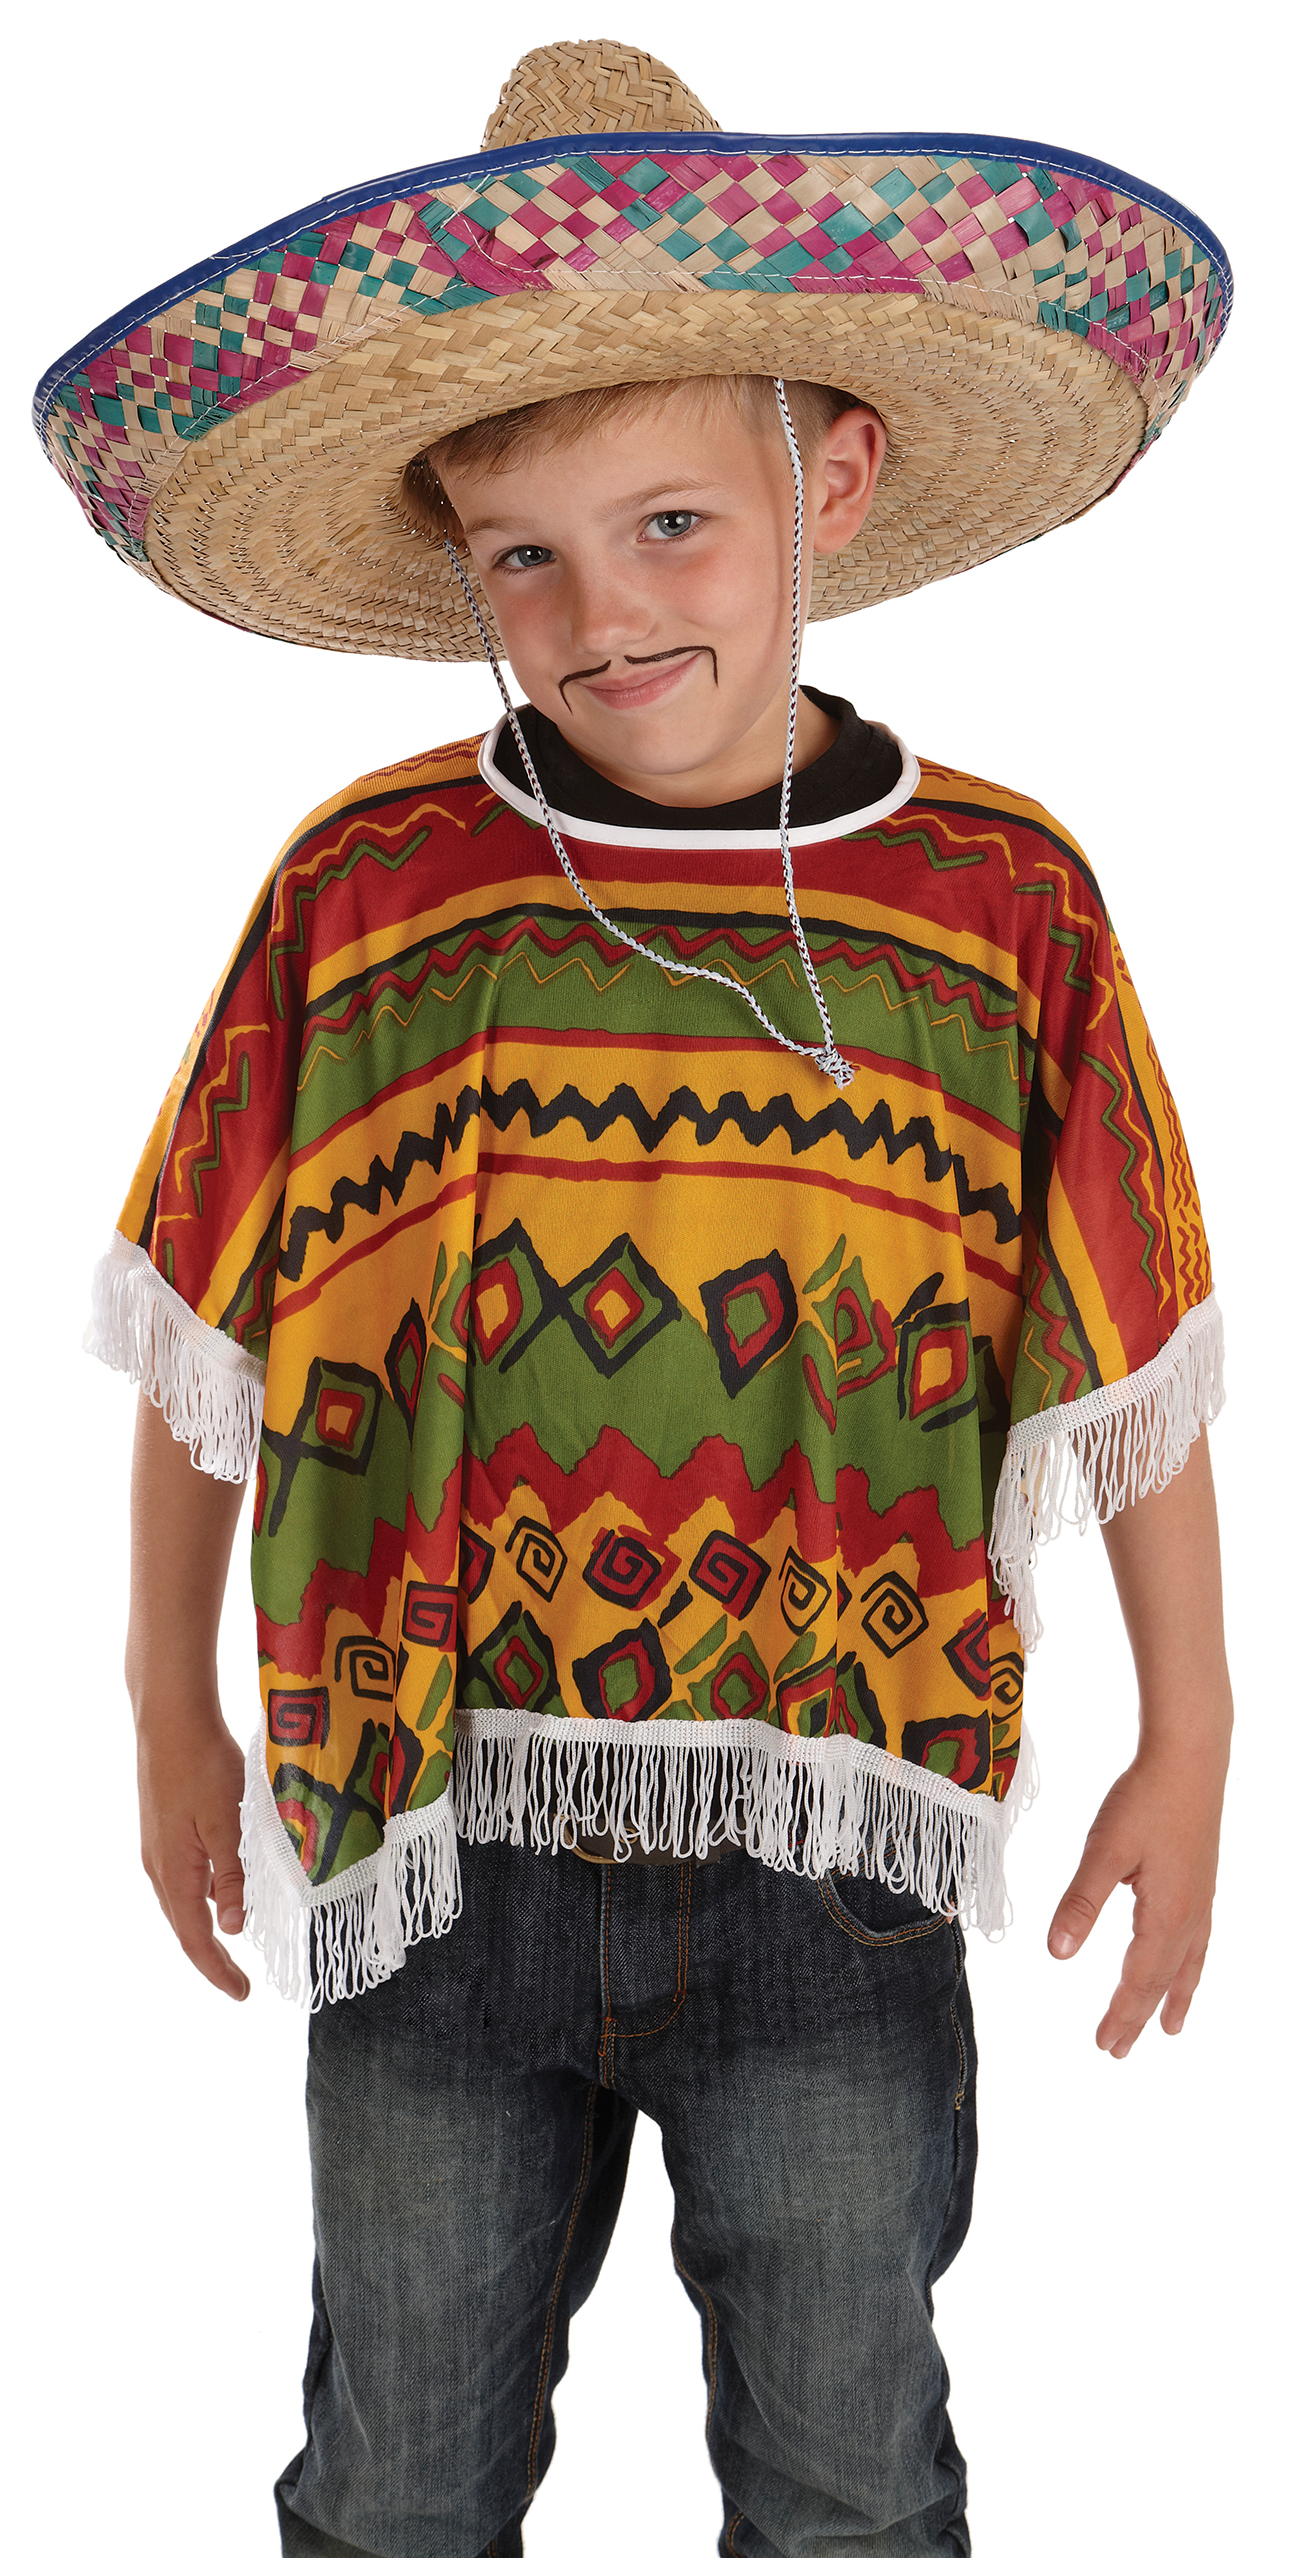 Boys Mexican Poncho Costume For Cowboy Wild West Fancy